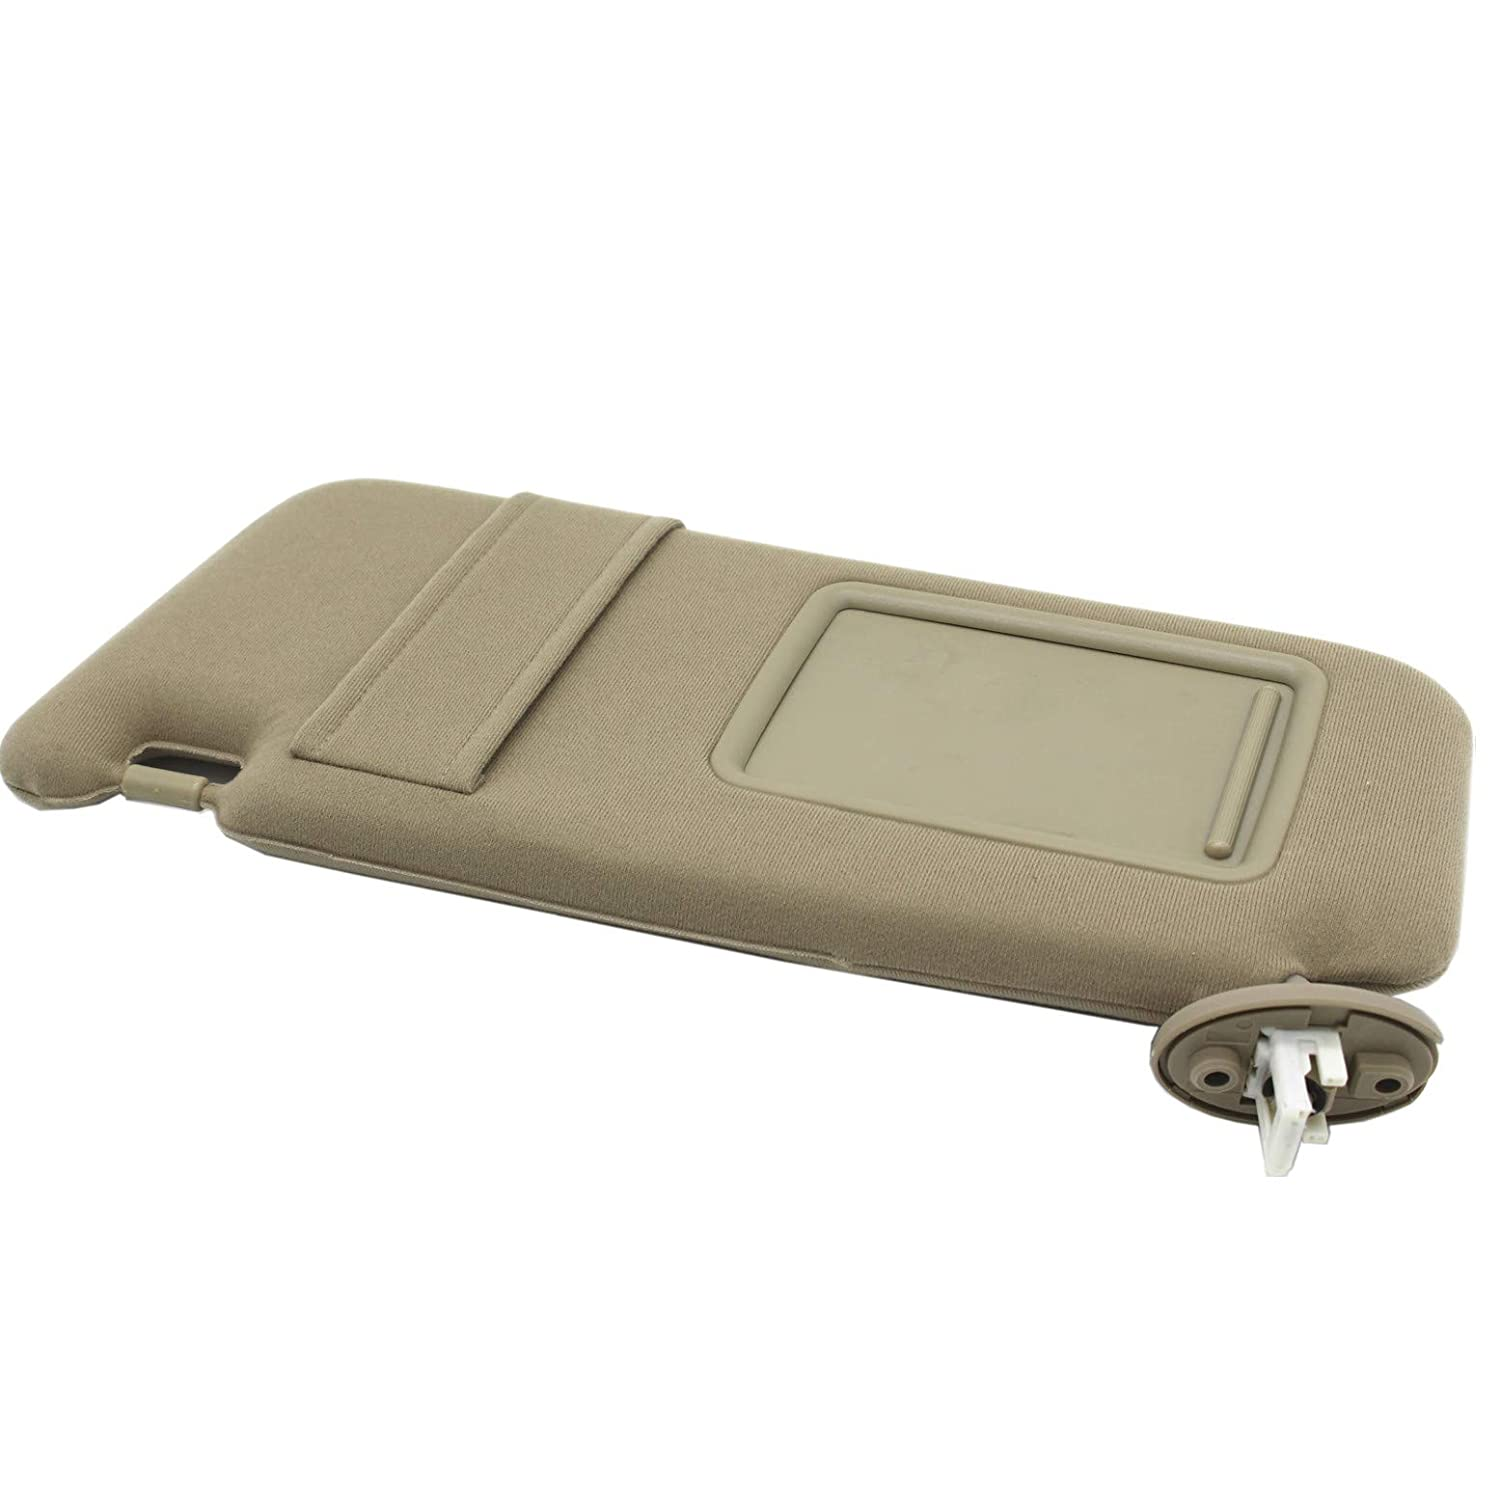 Ezzy Auto Beige Left Driver Side Sun Visor fit for Toyota Venza with Sunroof 2009 2010 2011 2012 2013 2014 2015 2016